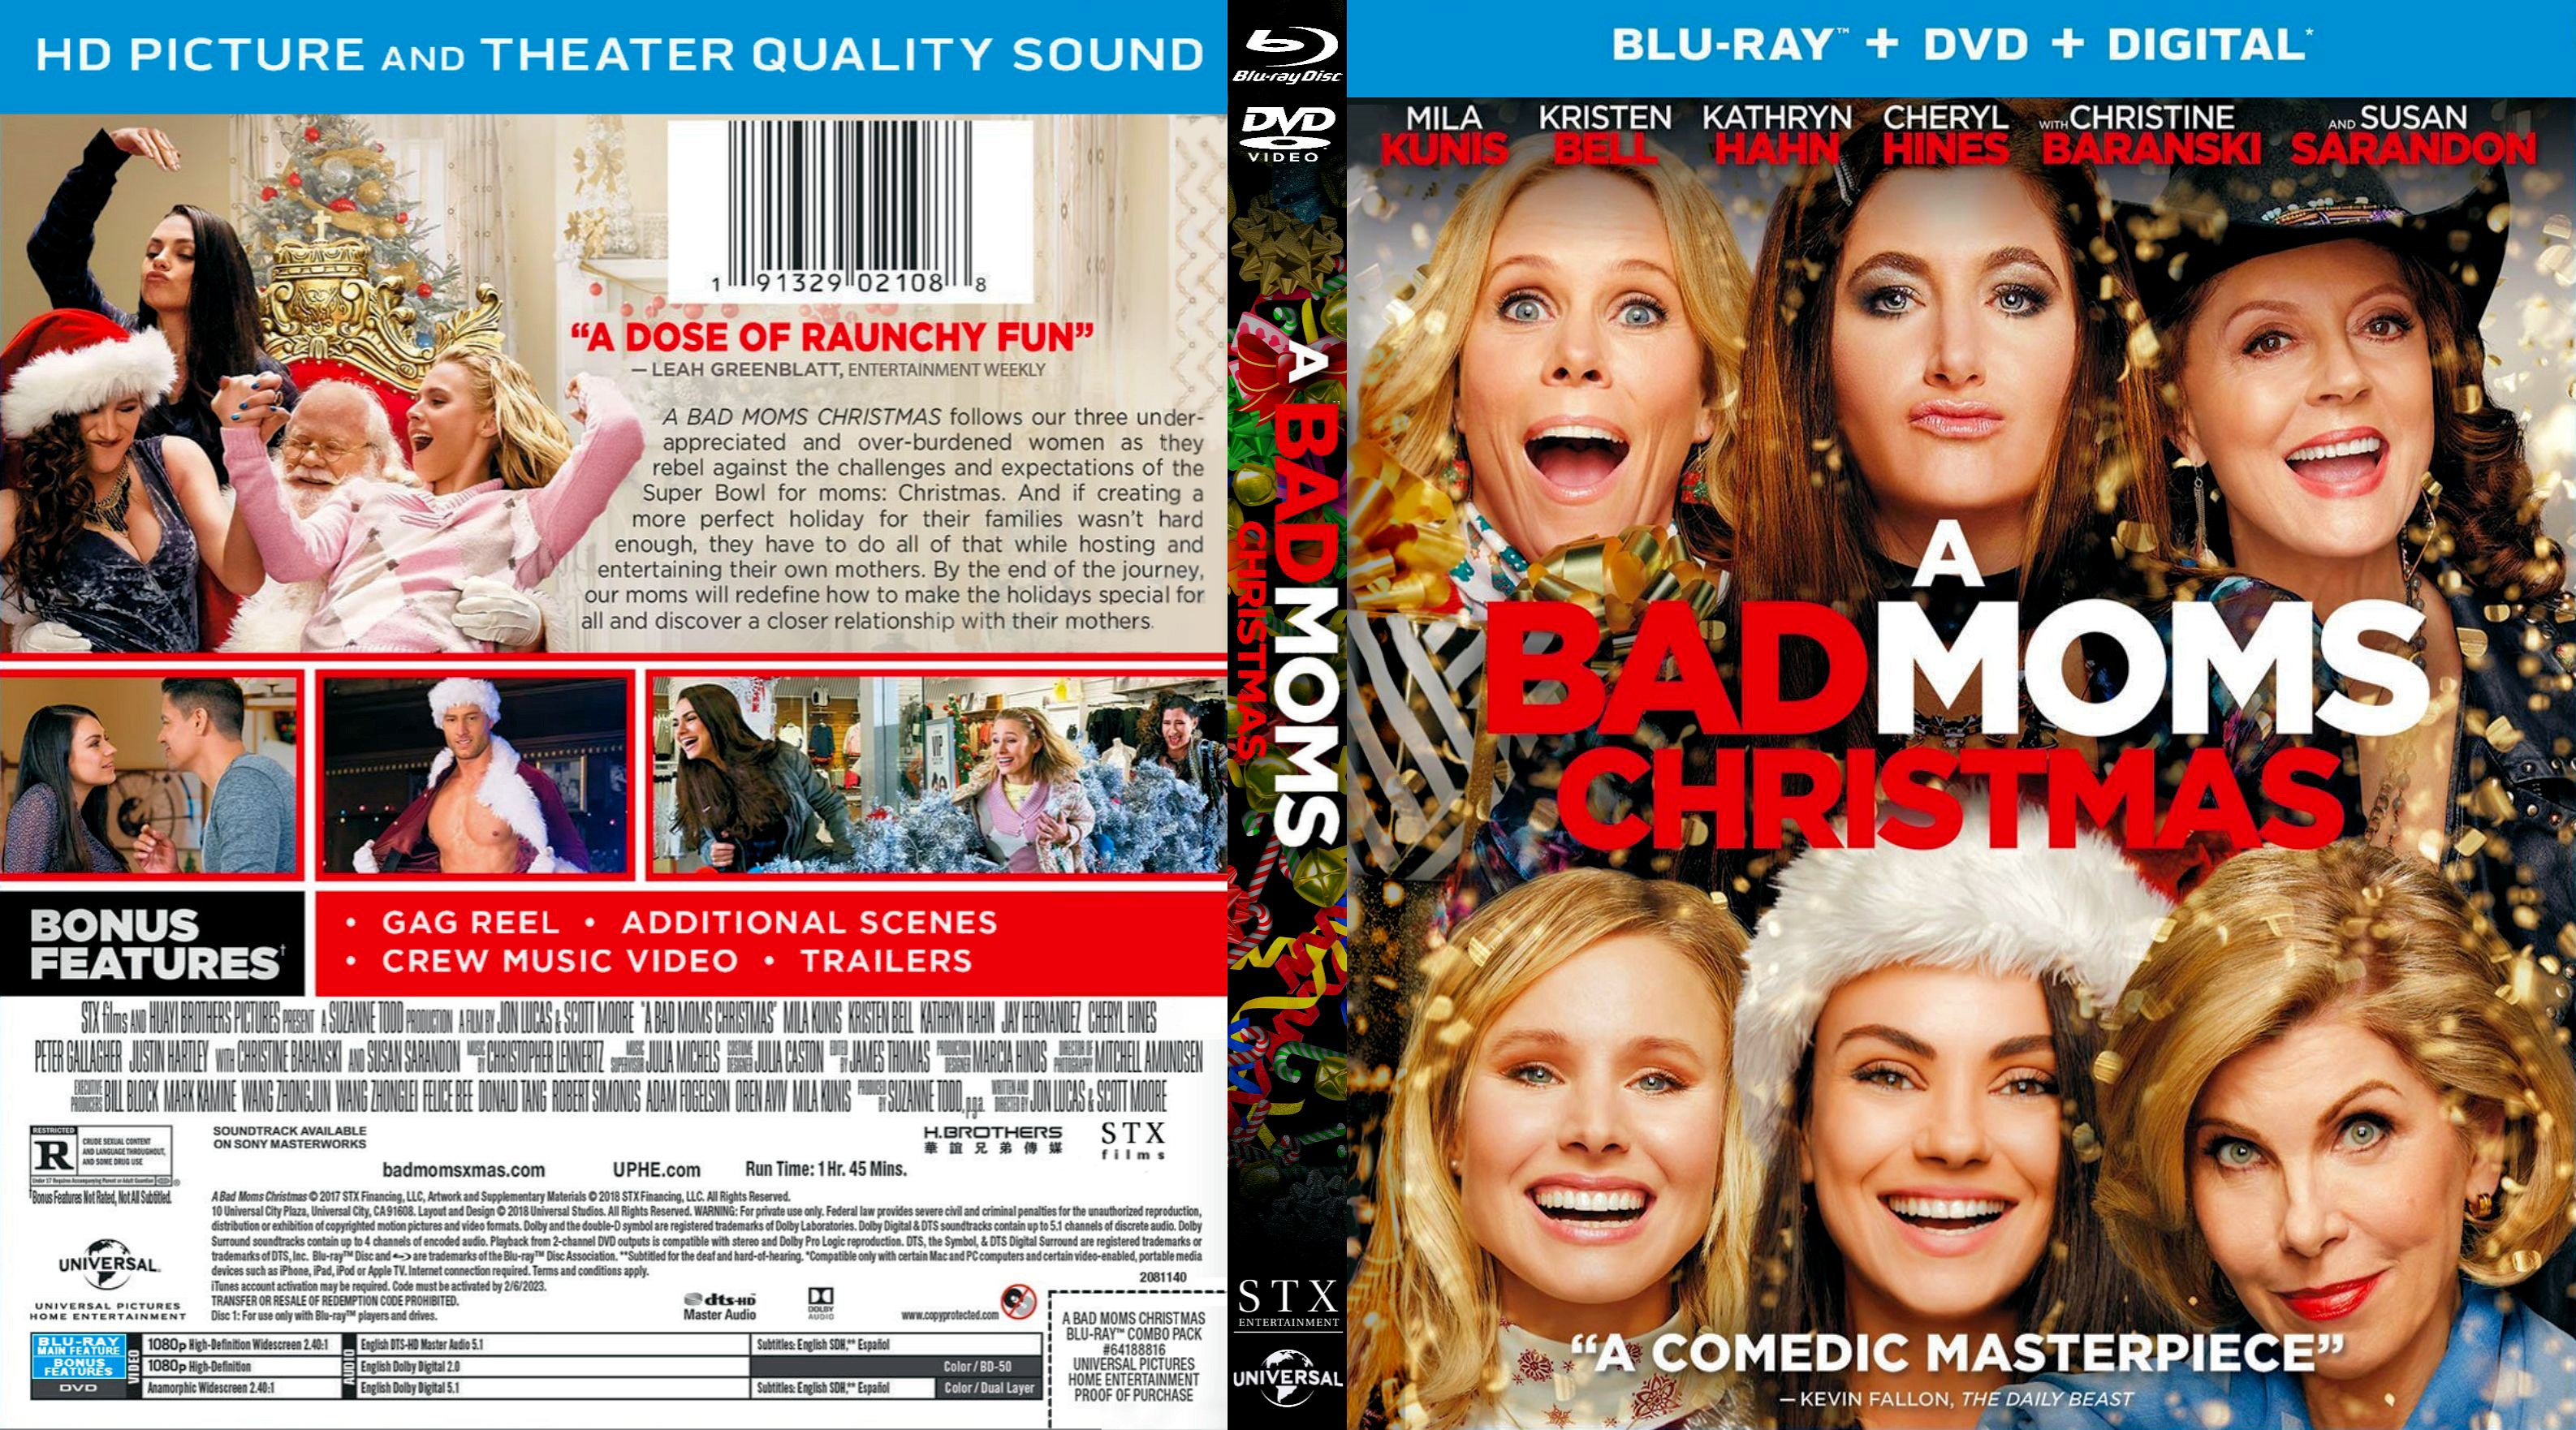 A Bad Moms Christmas Dvd Cover.A Bad Moms Christmas Bluray Dvd Cover Cover Addict Free